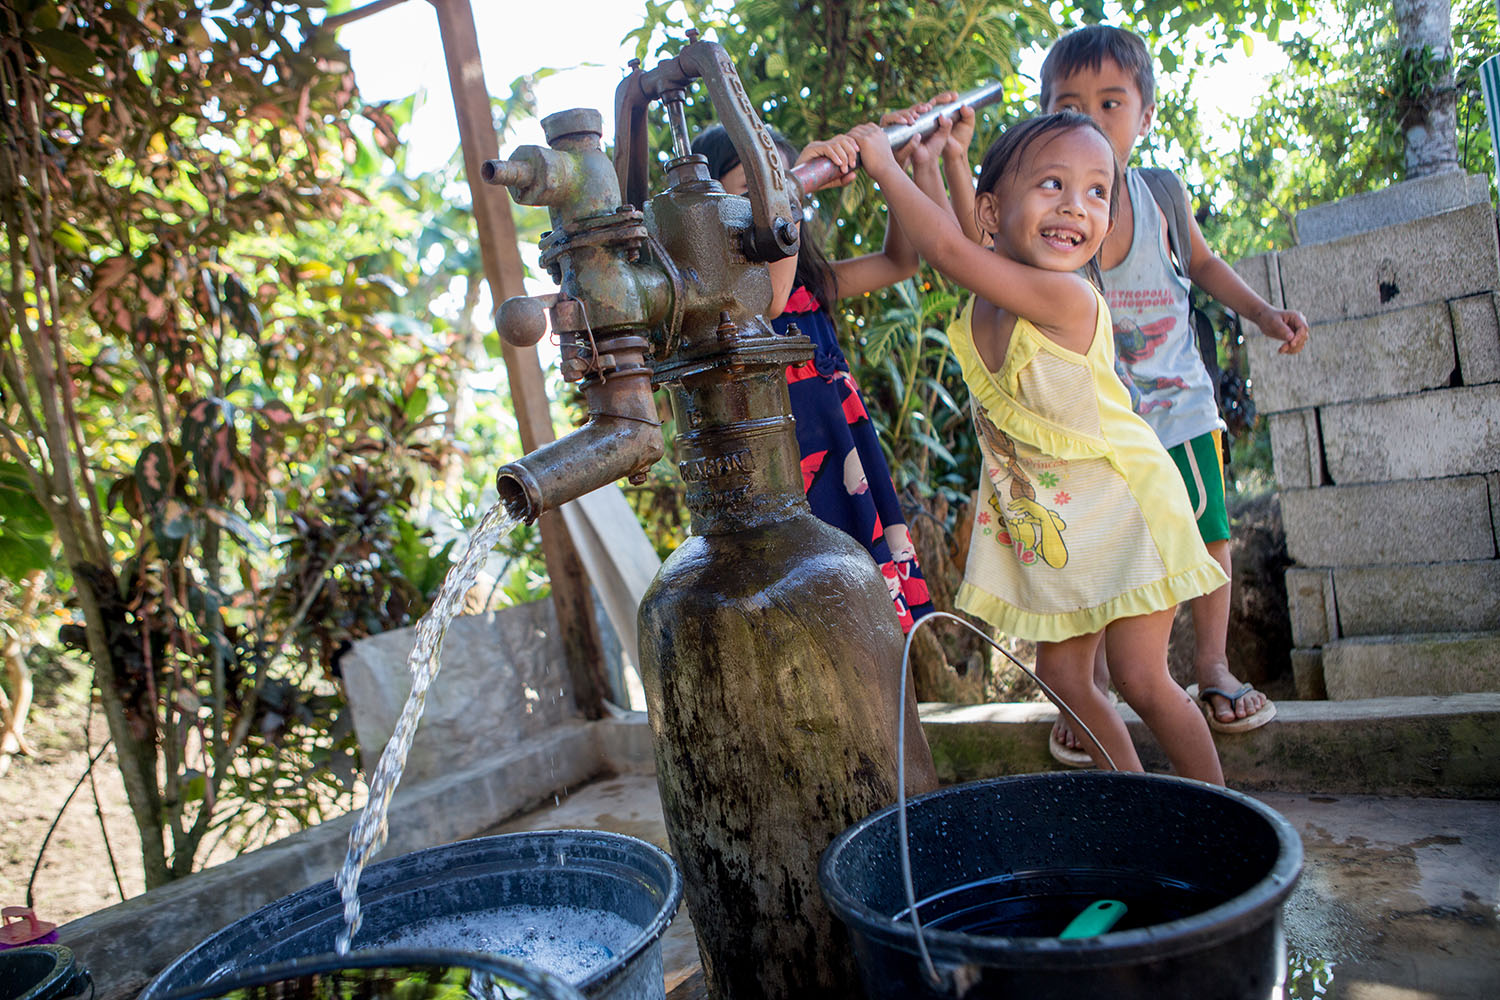 Alvin Johnson Raga, Christel Jade Gabiana, Shiane Ariese at the pump during the WASH community visi UNICEF trip to Tacloban, in the Philipines to report on their response to Typhoon Yolanda, March 2016